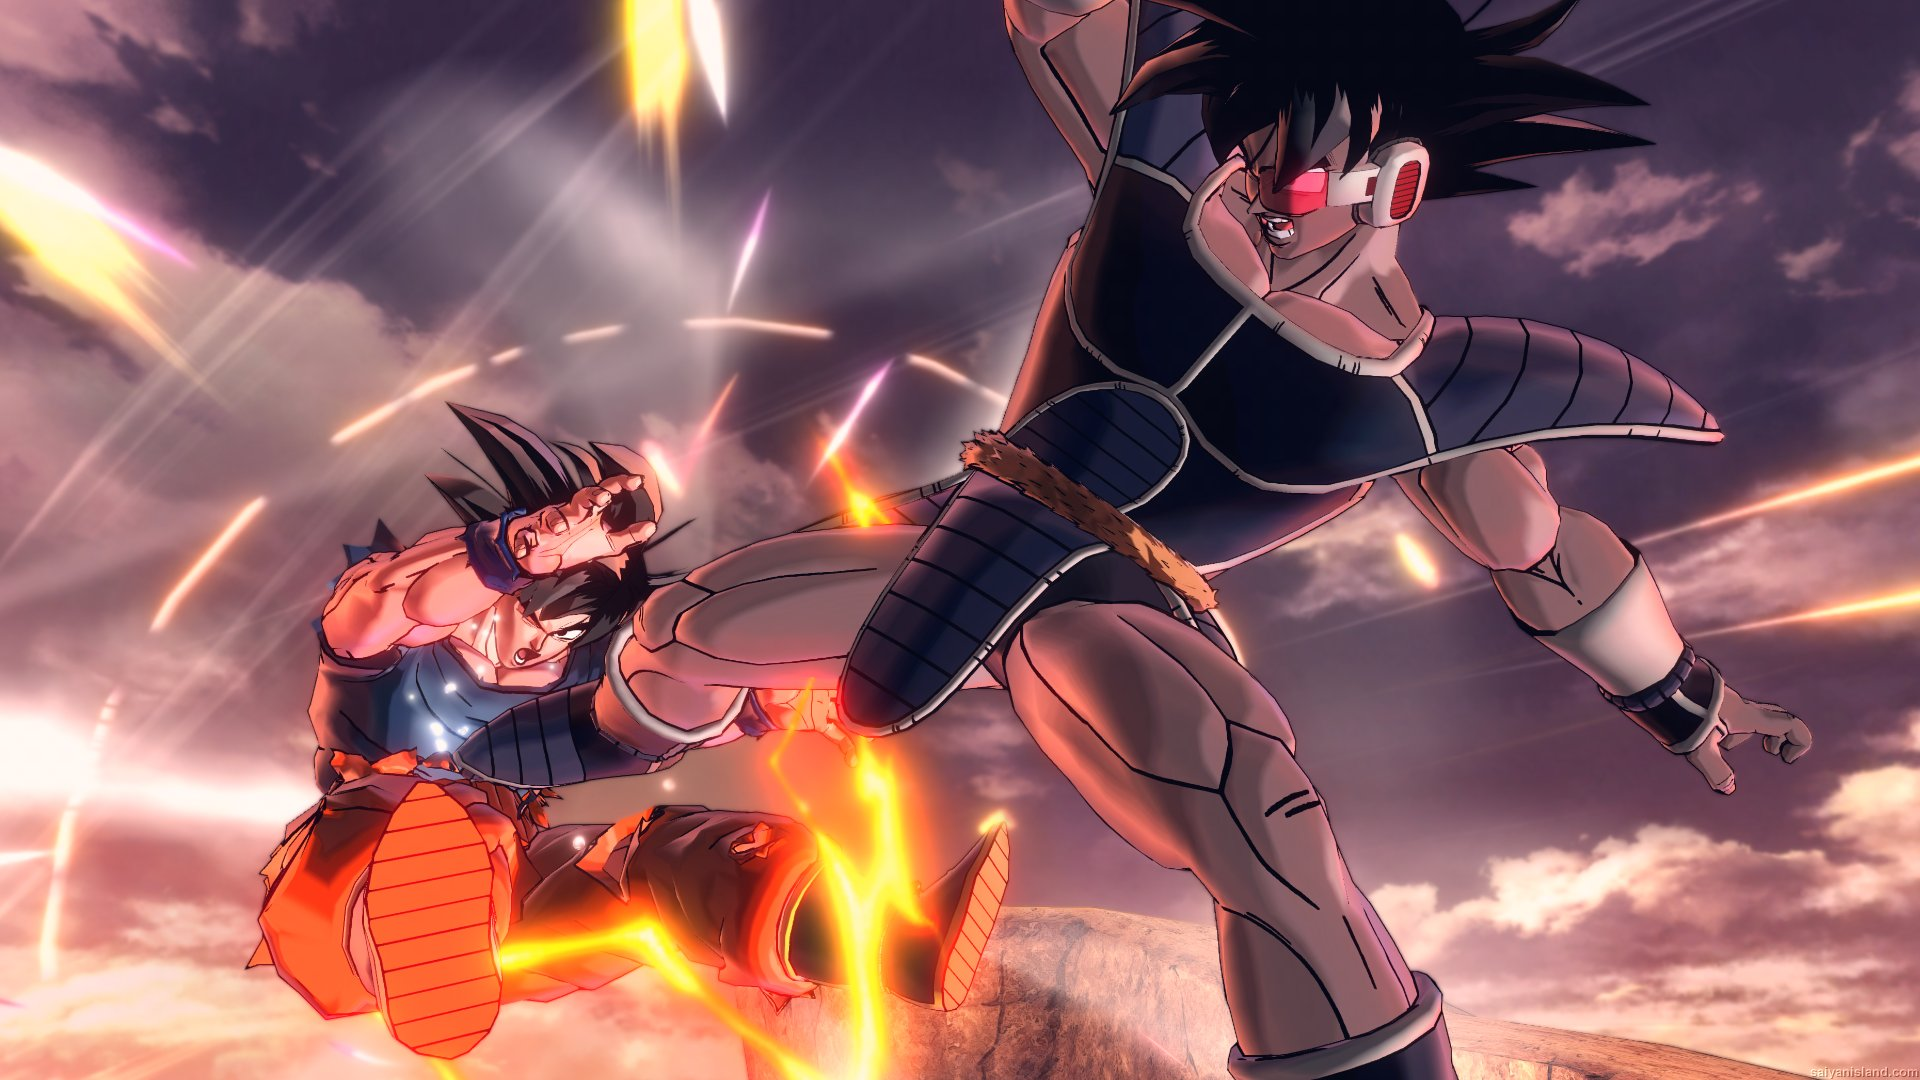 dragon-ball-xenoverse-032